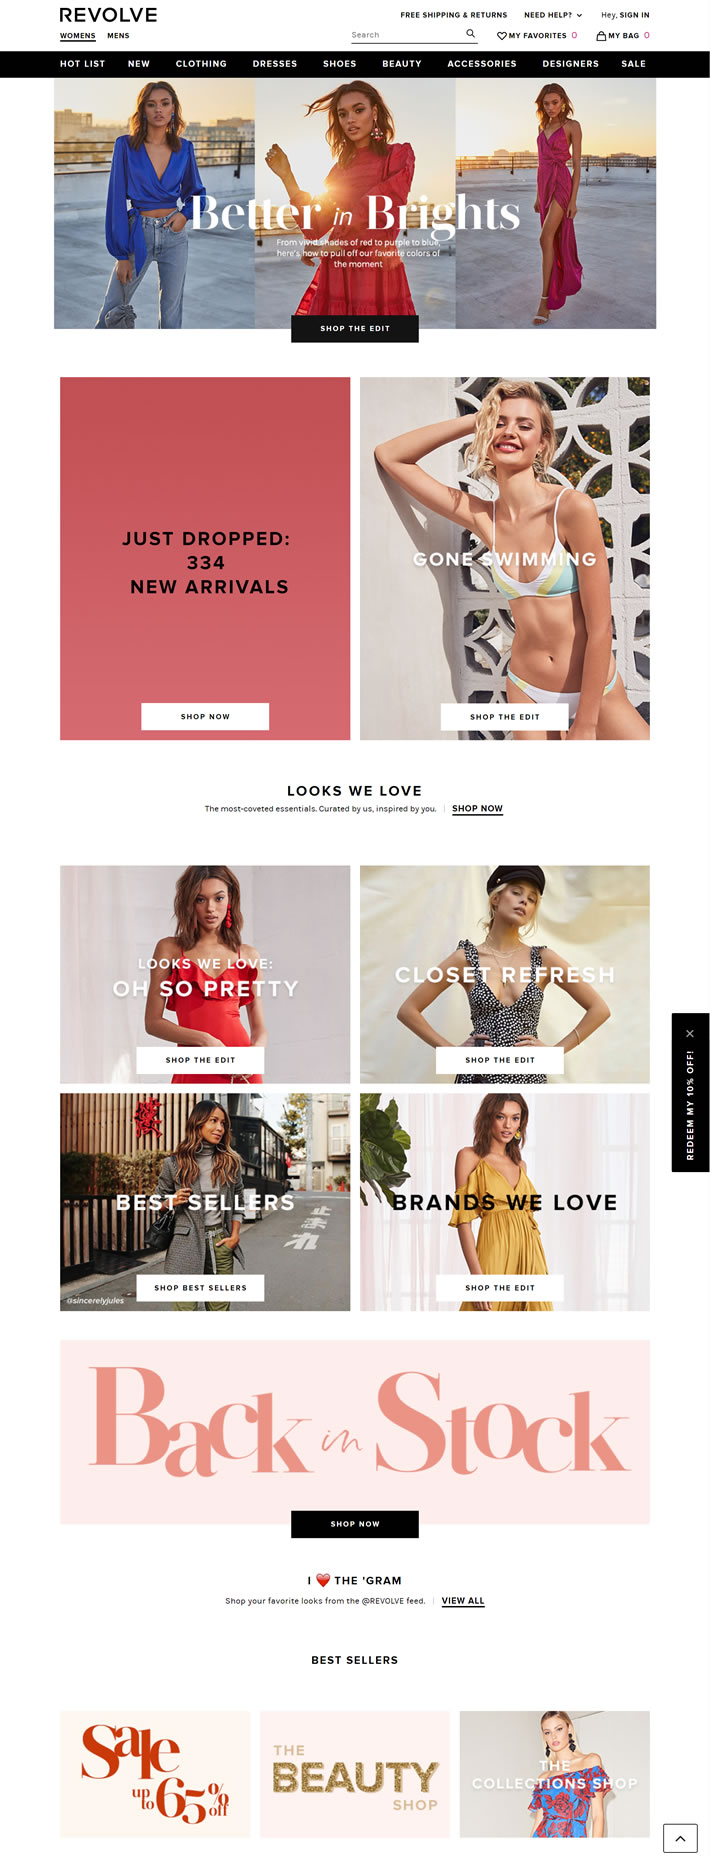 American Light Luxury Fashion Shopping Website: REVOLVE